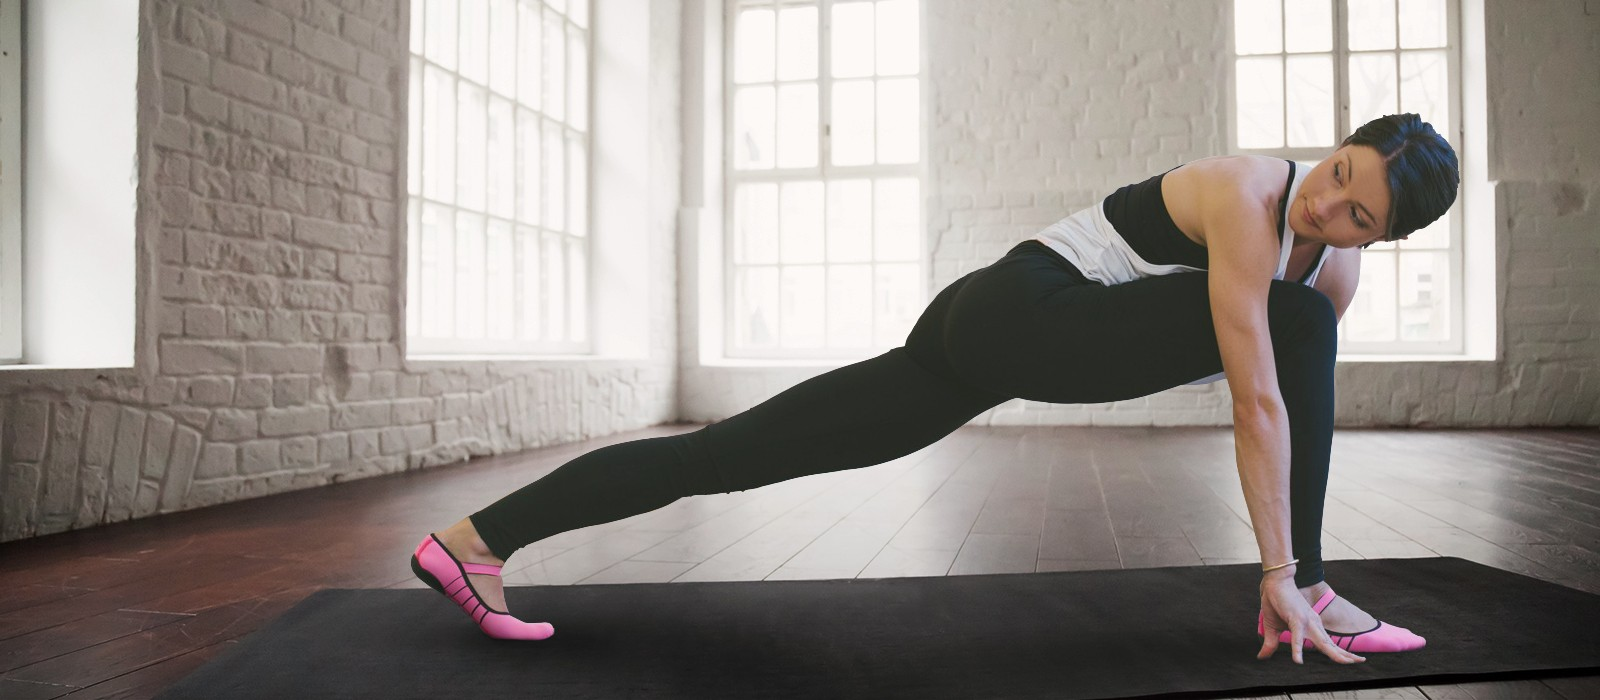 image - Unbeatable footwear for Barre and Pilates.